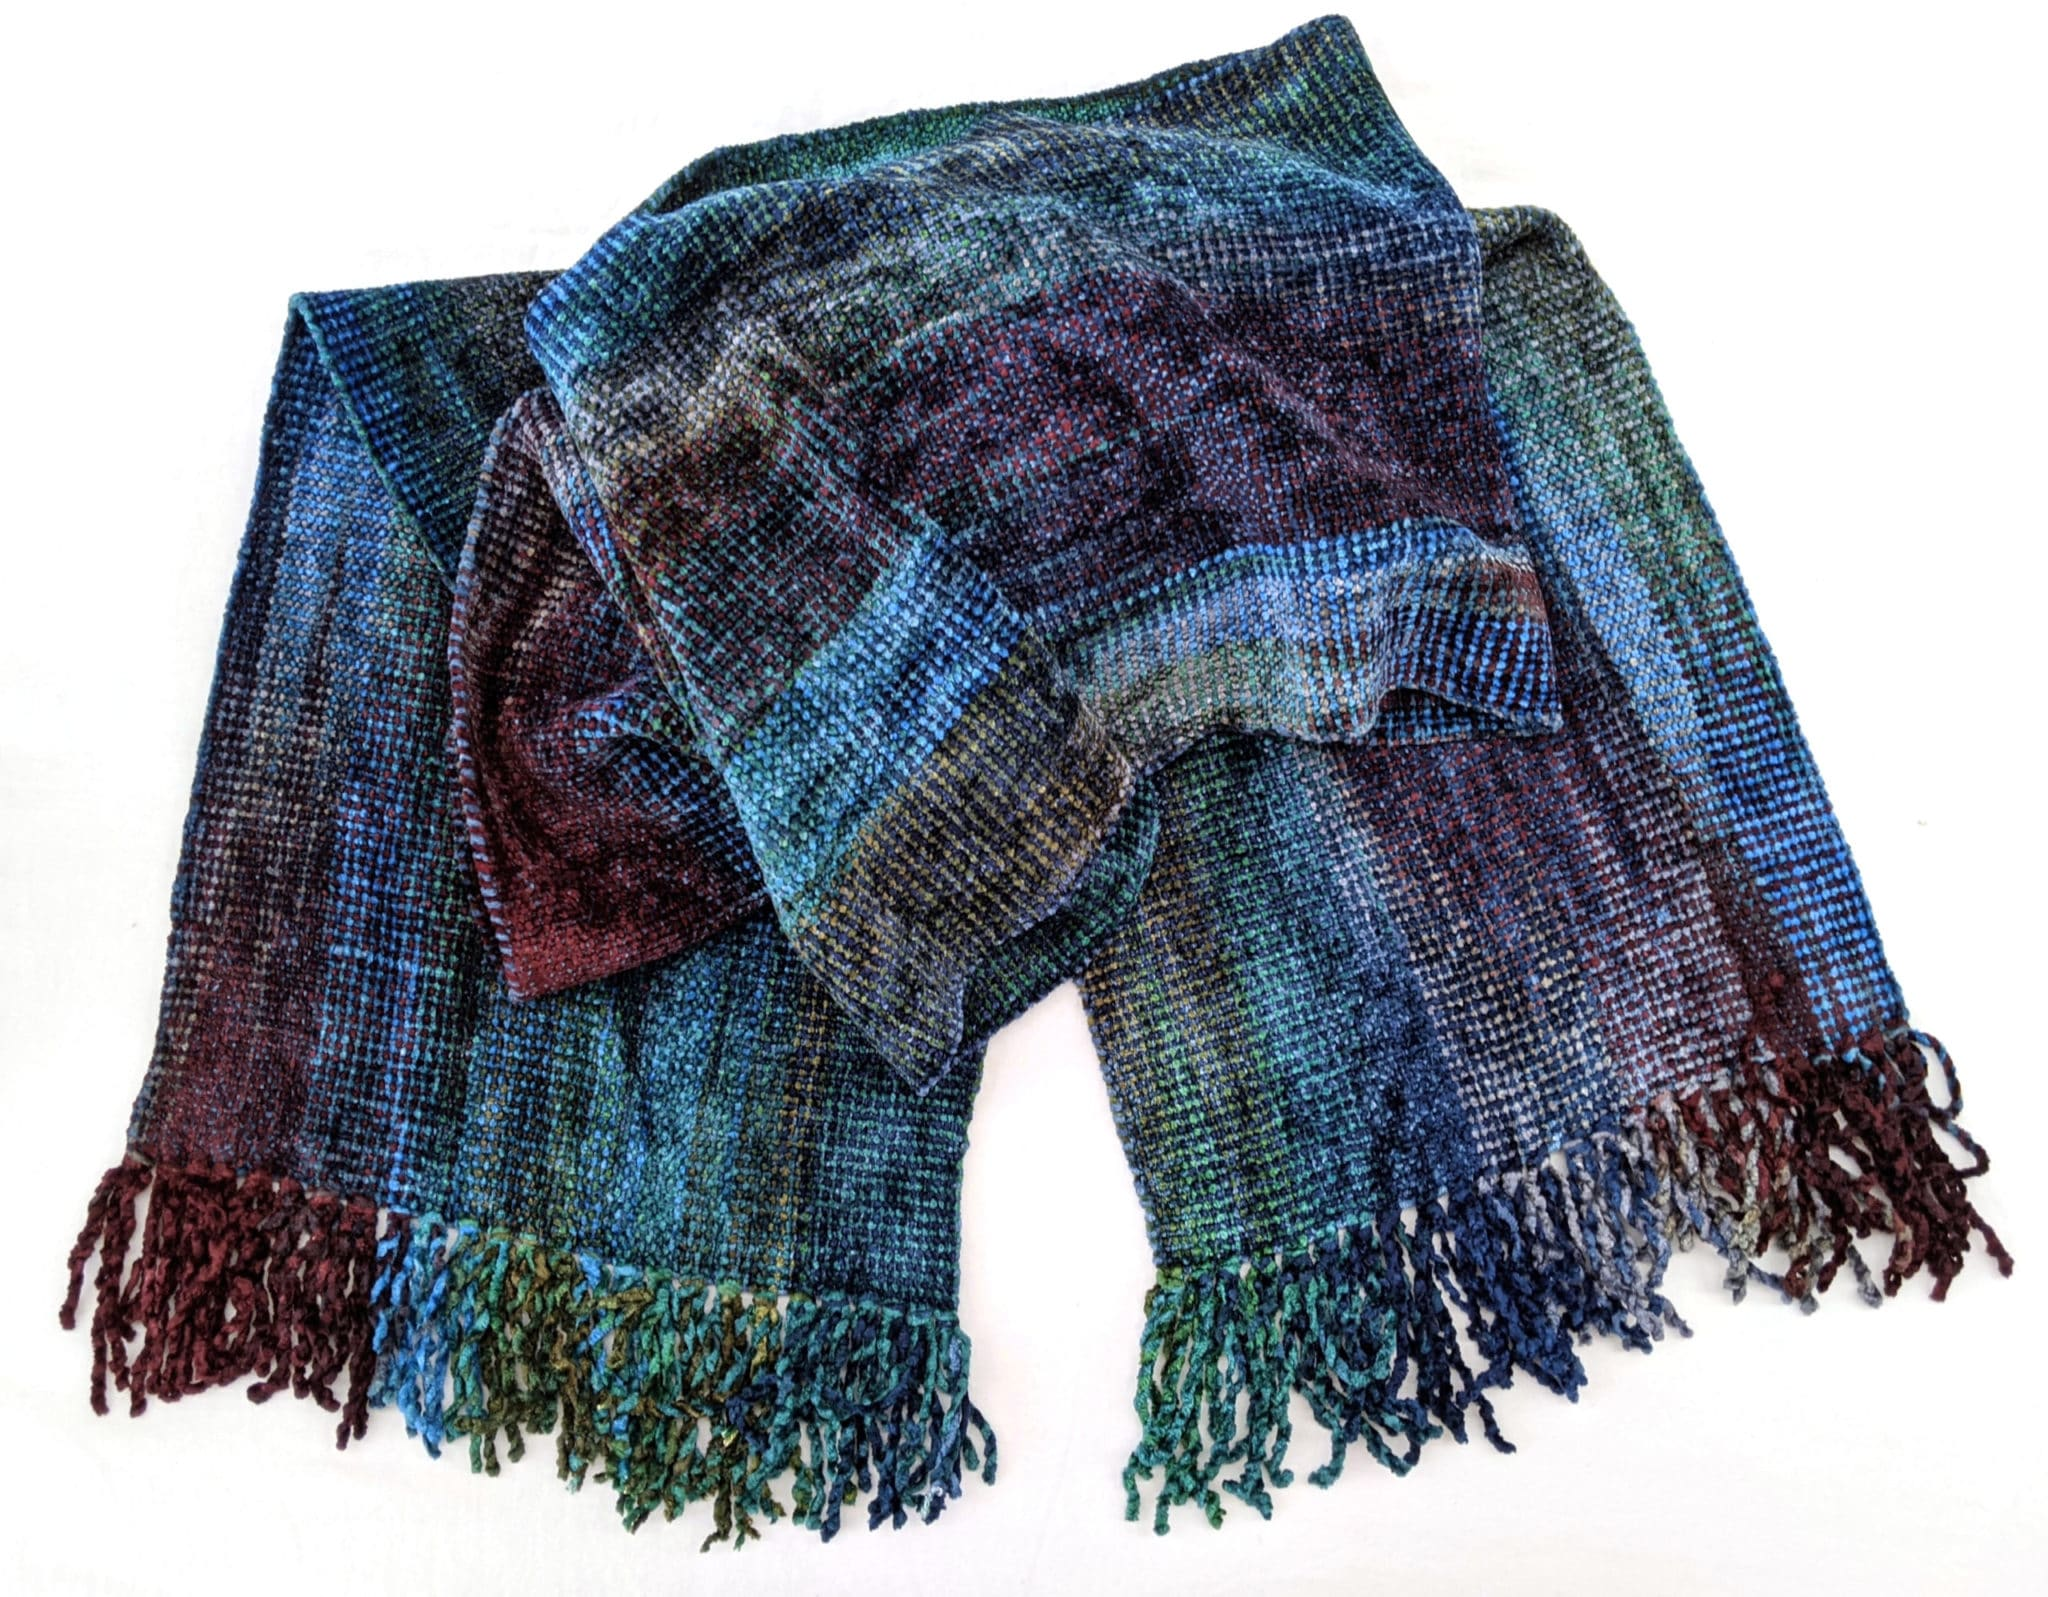 Blue, Green, Burgundy, Gray - Bamboo Chenille Handwoven Scarf 8 x 68